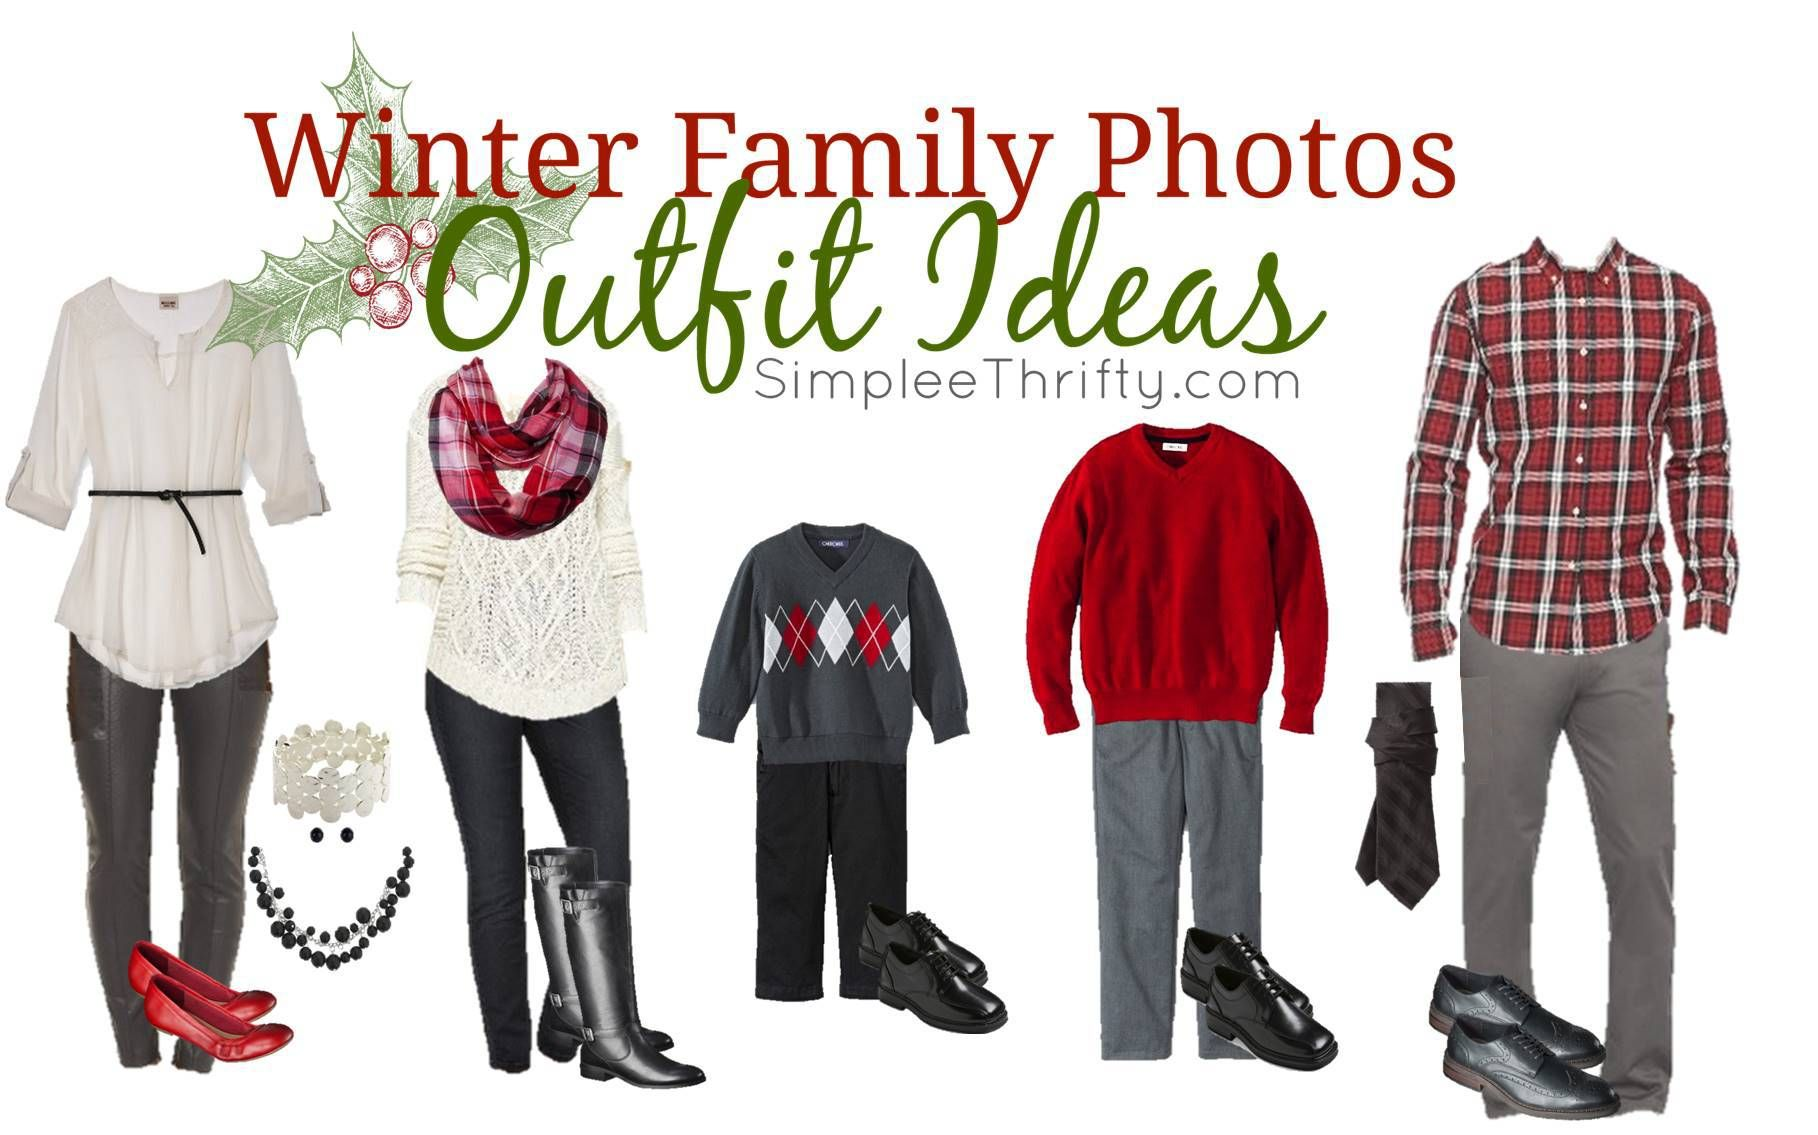 Winter Family Photos Outfit Ideas